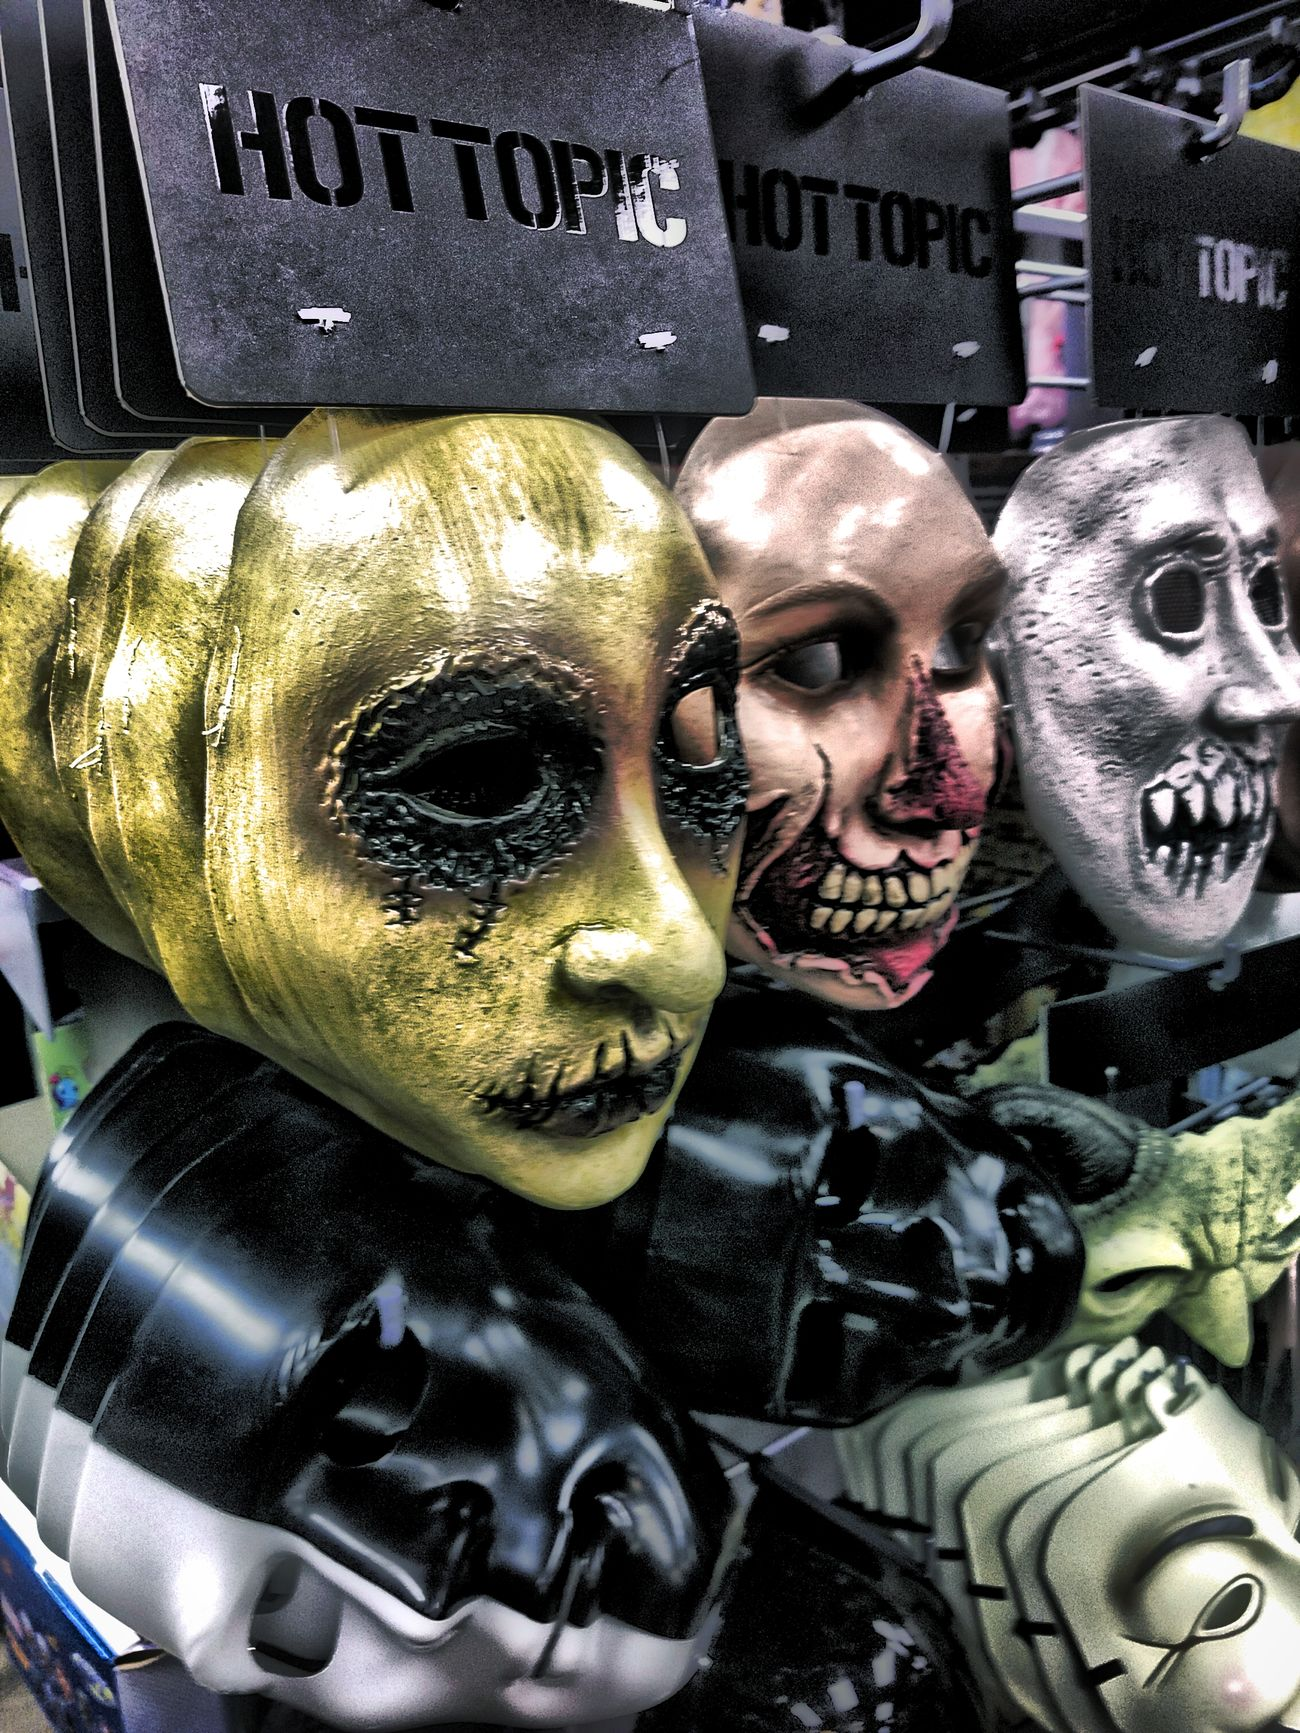 Wall of Faces. Man Made Object Close-up Urbanphotography Hdr_lovers Texas!!!! HDR Streetphotography City Life Vibrant Color Hdr_captures Mask_collection Mask_collection Masked Hot Topic